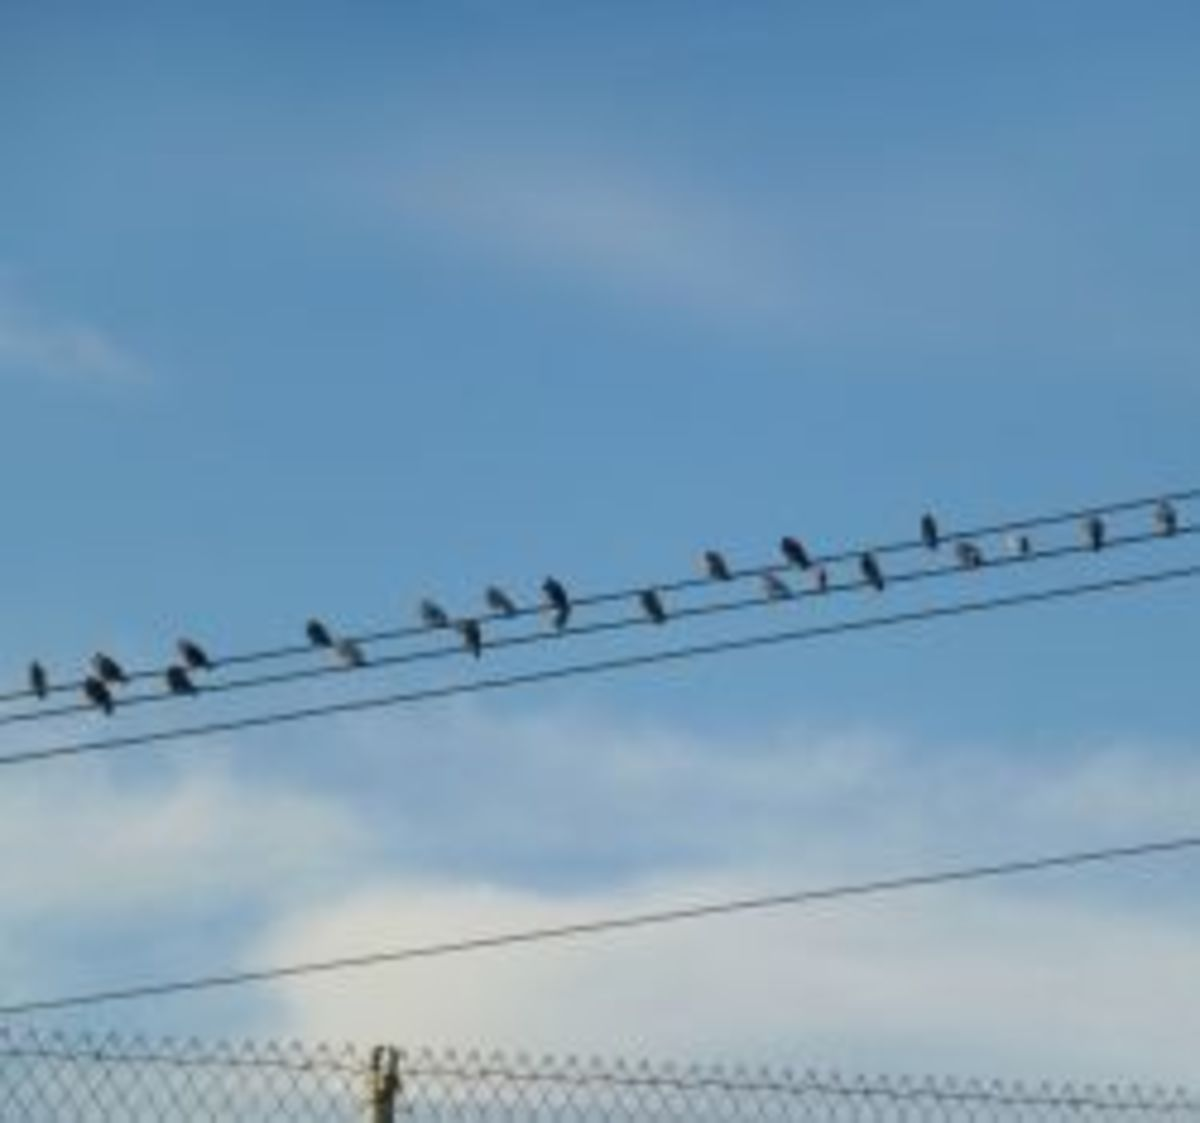 Why birds like to sit on power lines